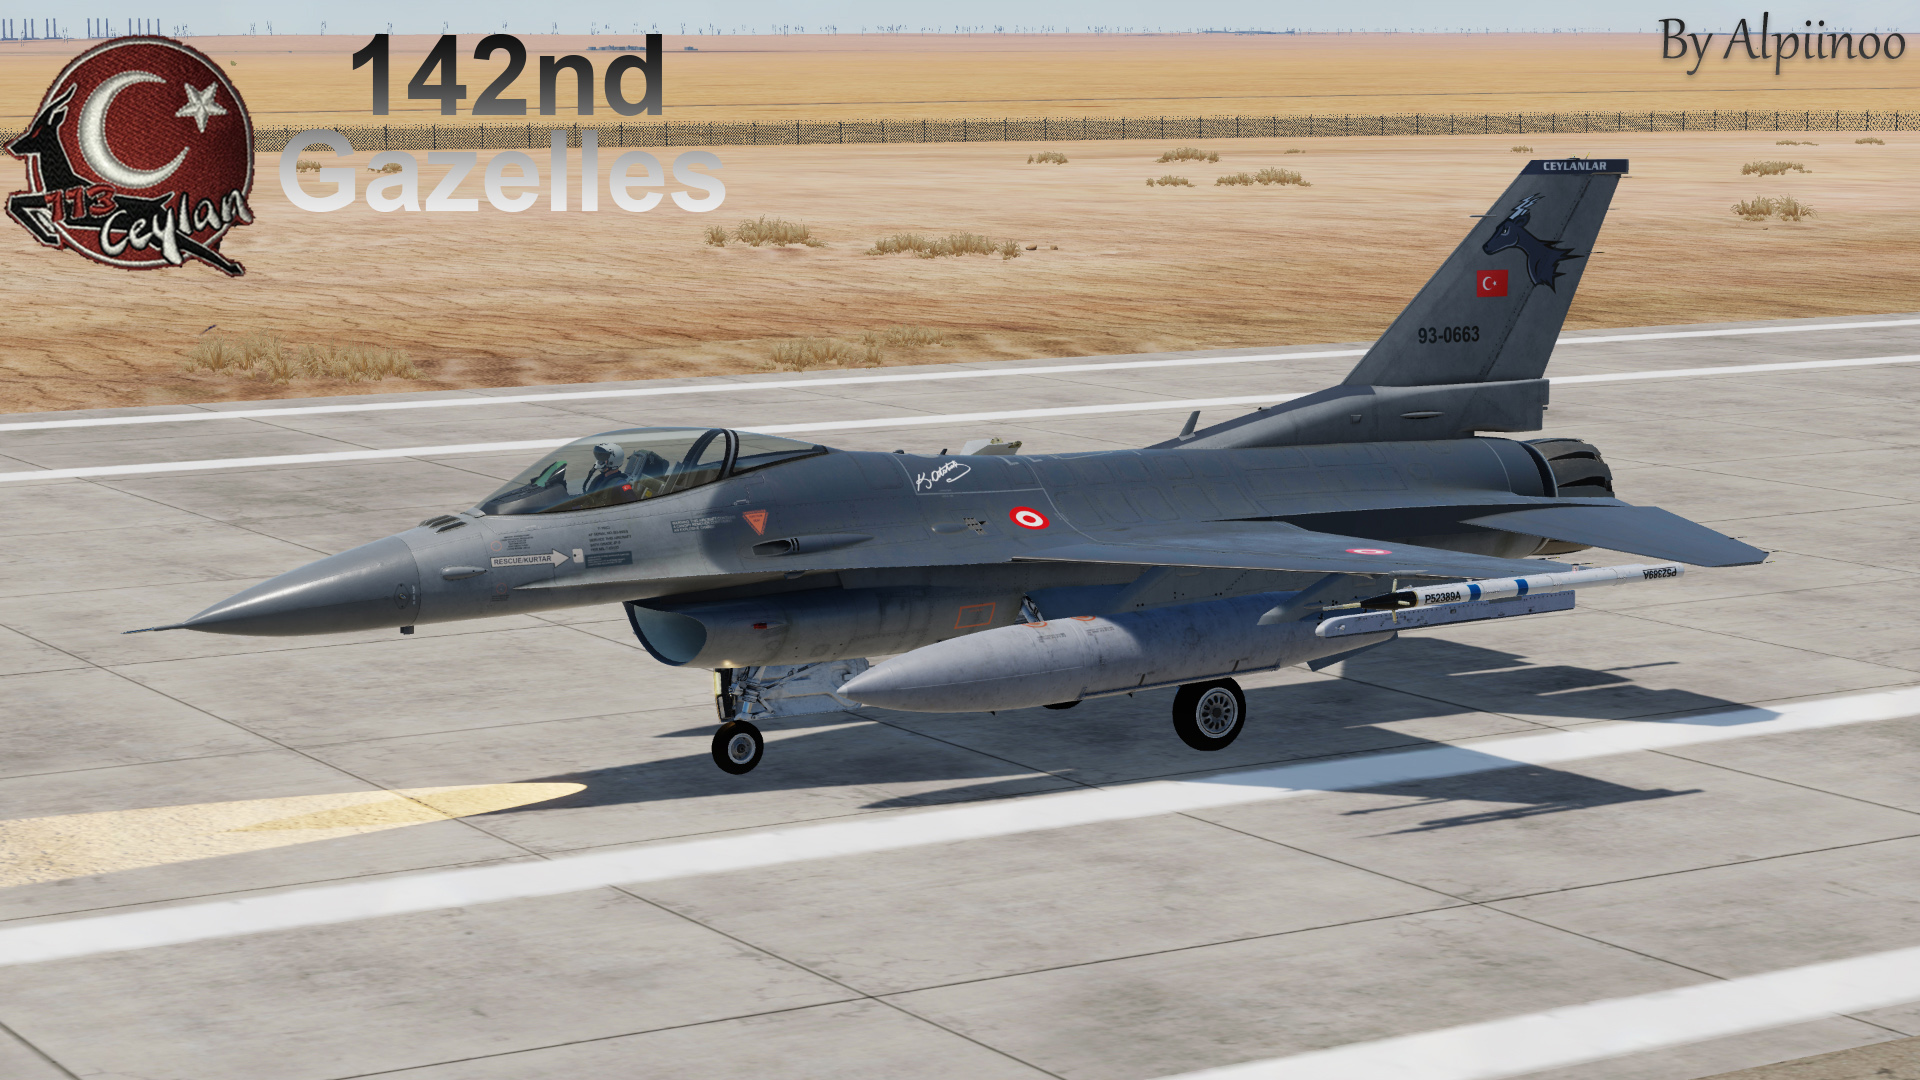 Turkish Air Force (TurAf) F-16C - 142nd Gazelles (NEW UPDATE)